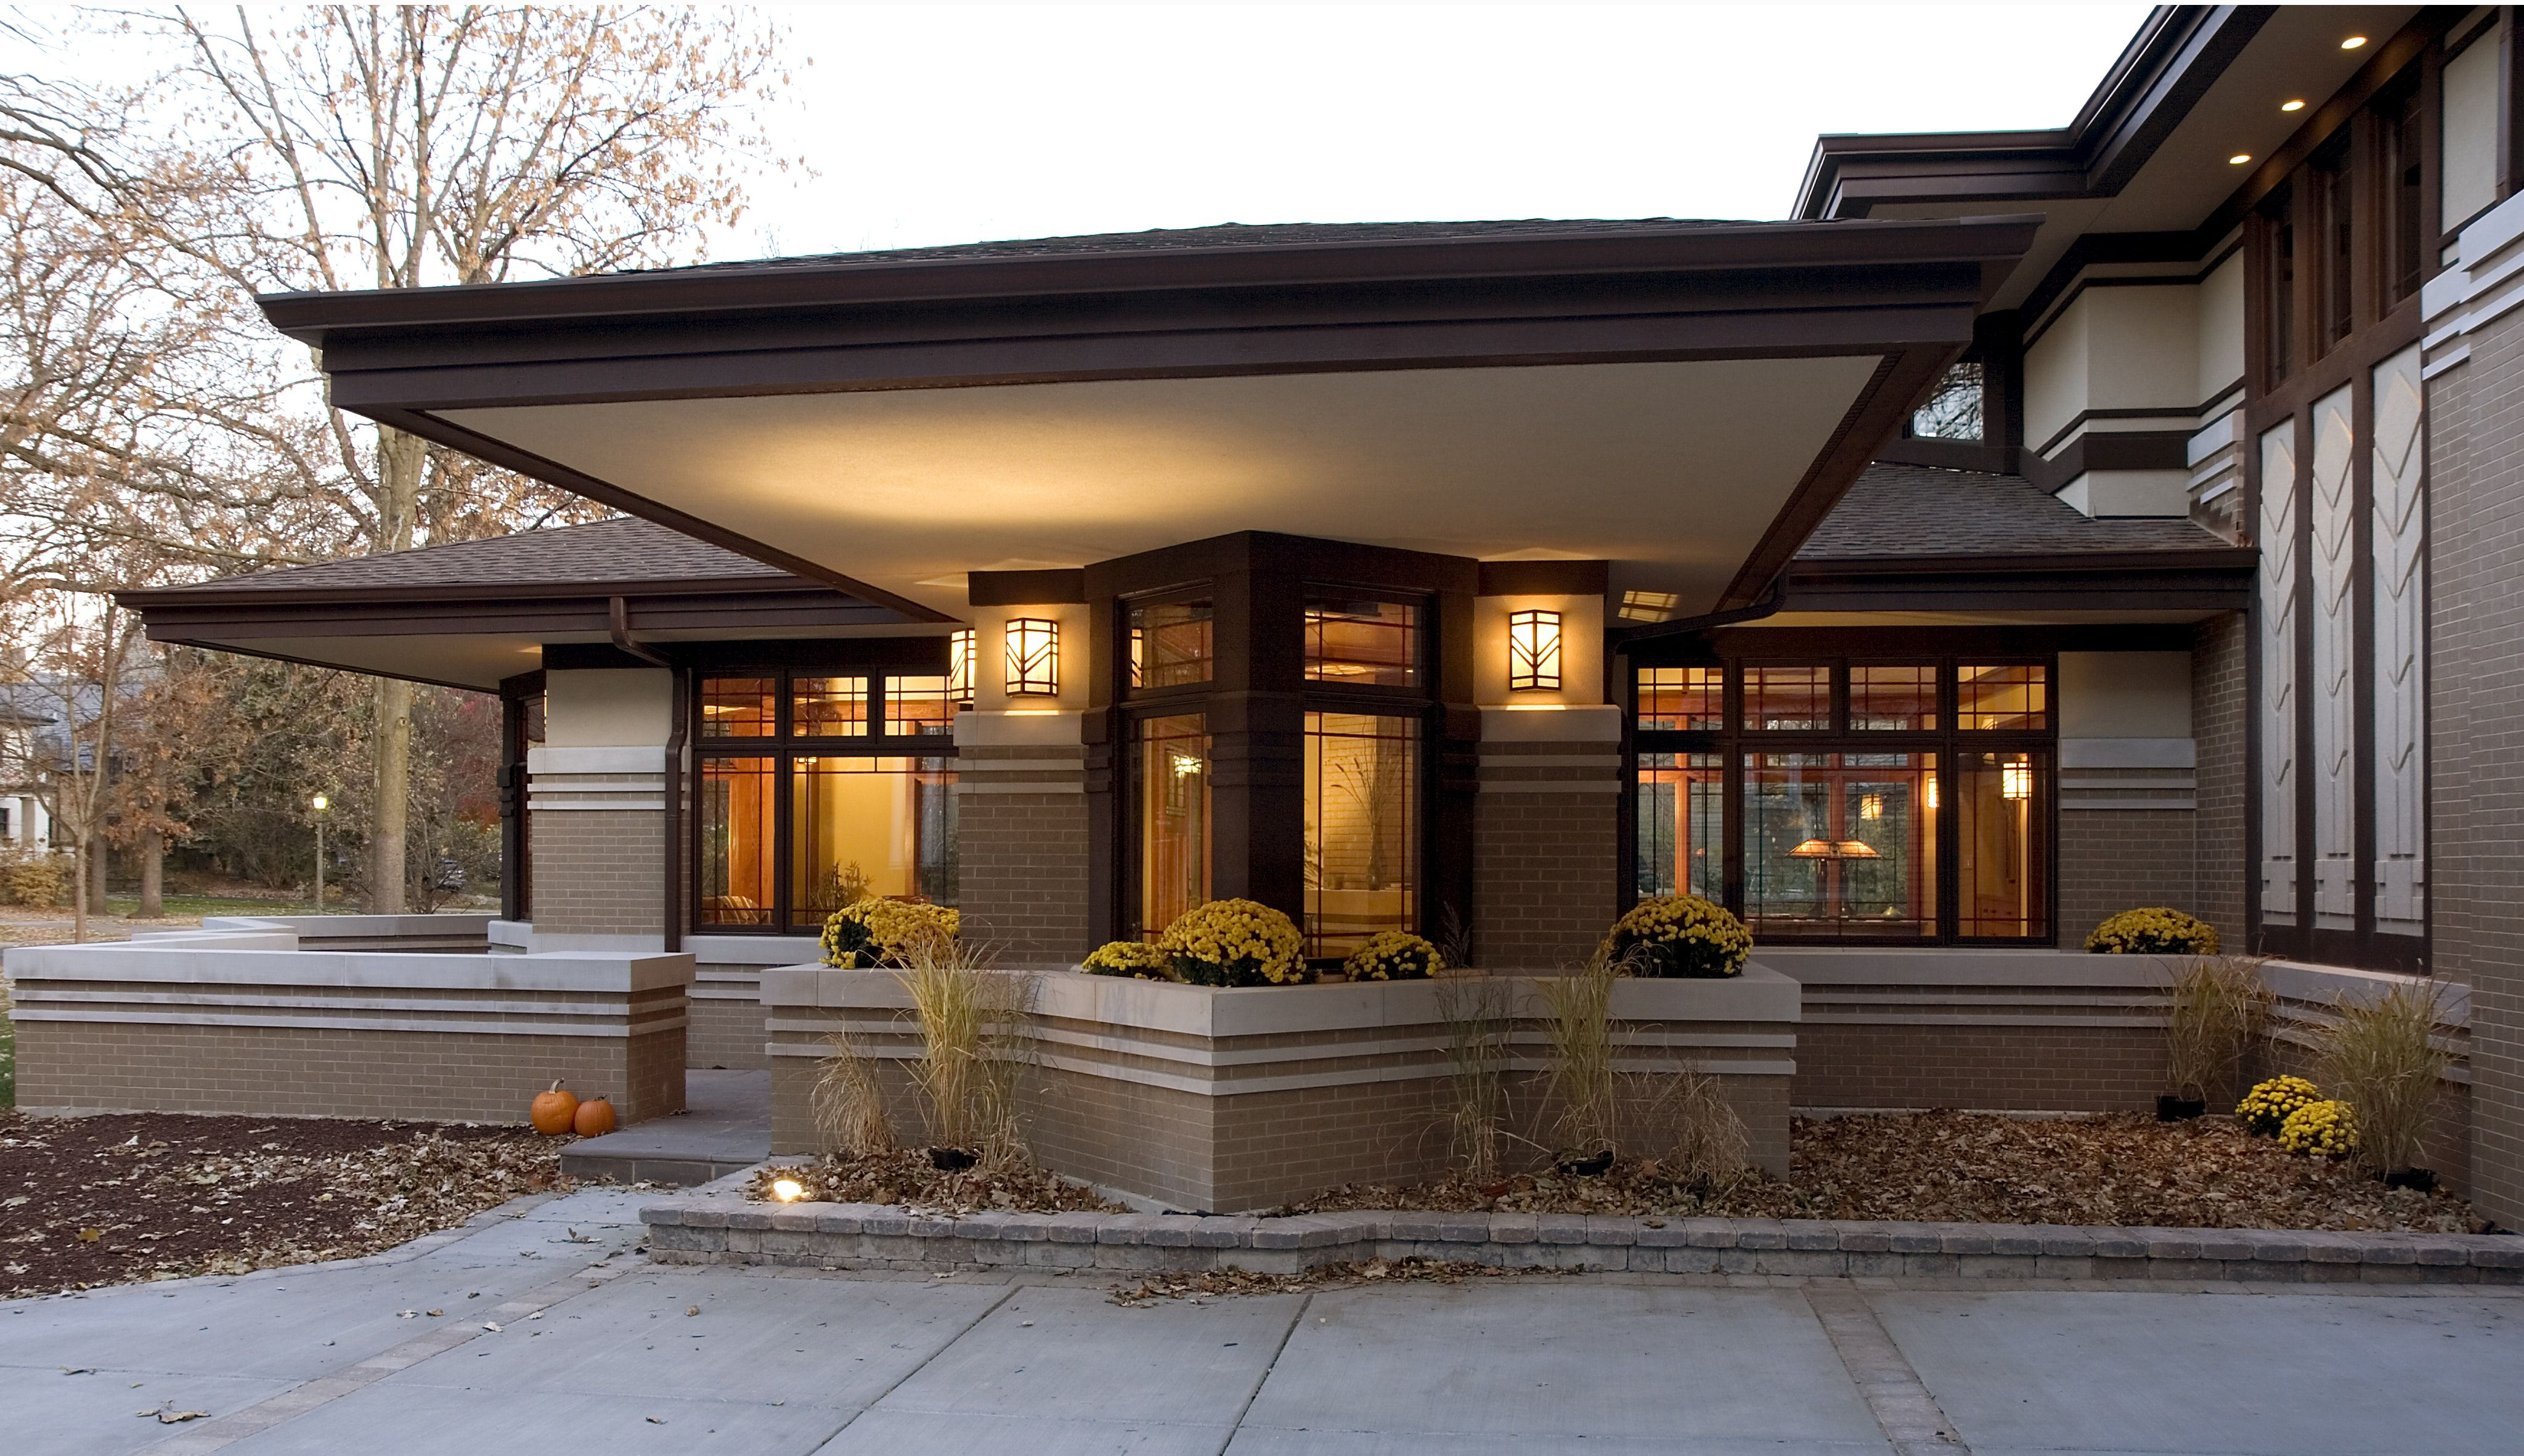 Frank Lloyd Wright Inspired Cantilever Prairie Style Houses Prairie Style Architecture Prarie Style Homes